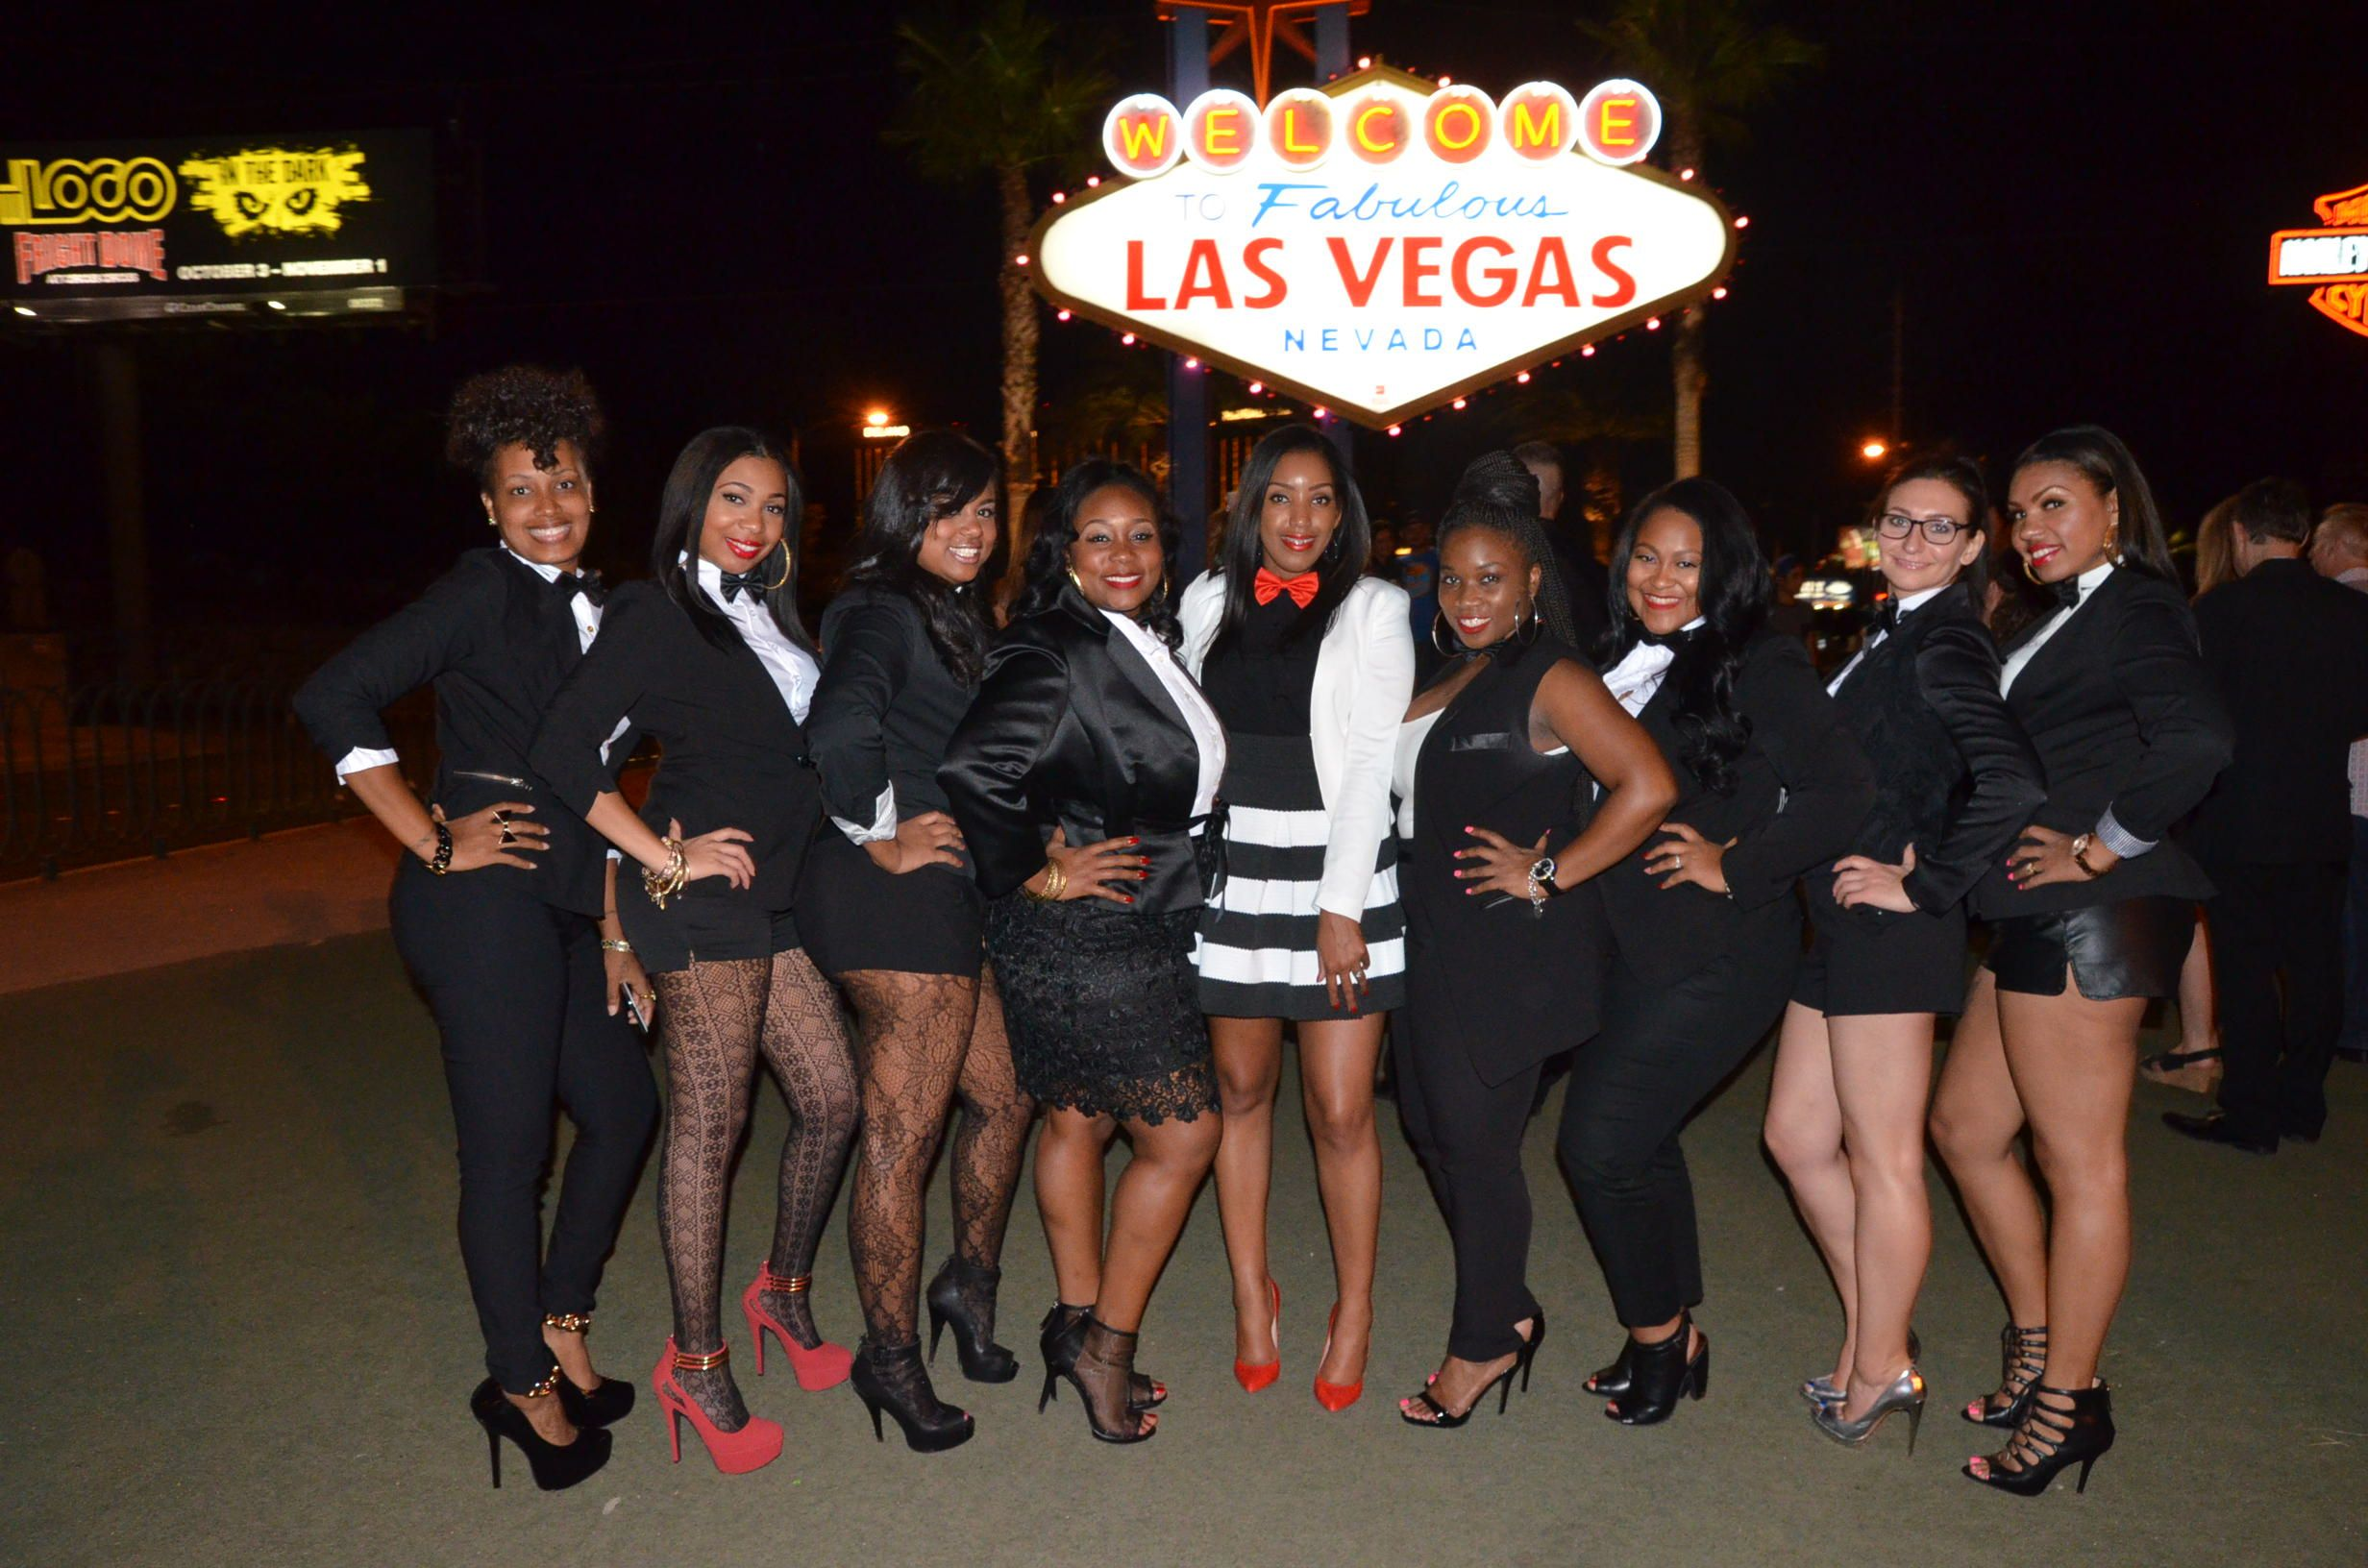 Las Vegas Bachelorette Party outfits for the bride and wedding party!